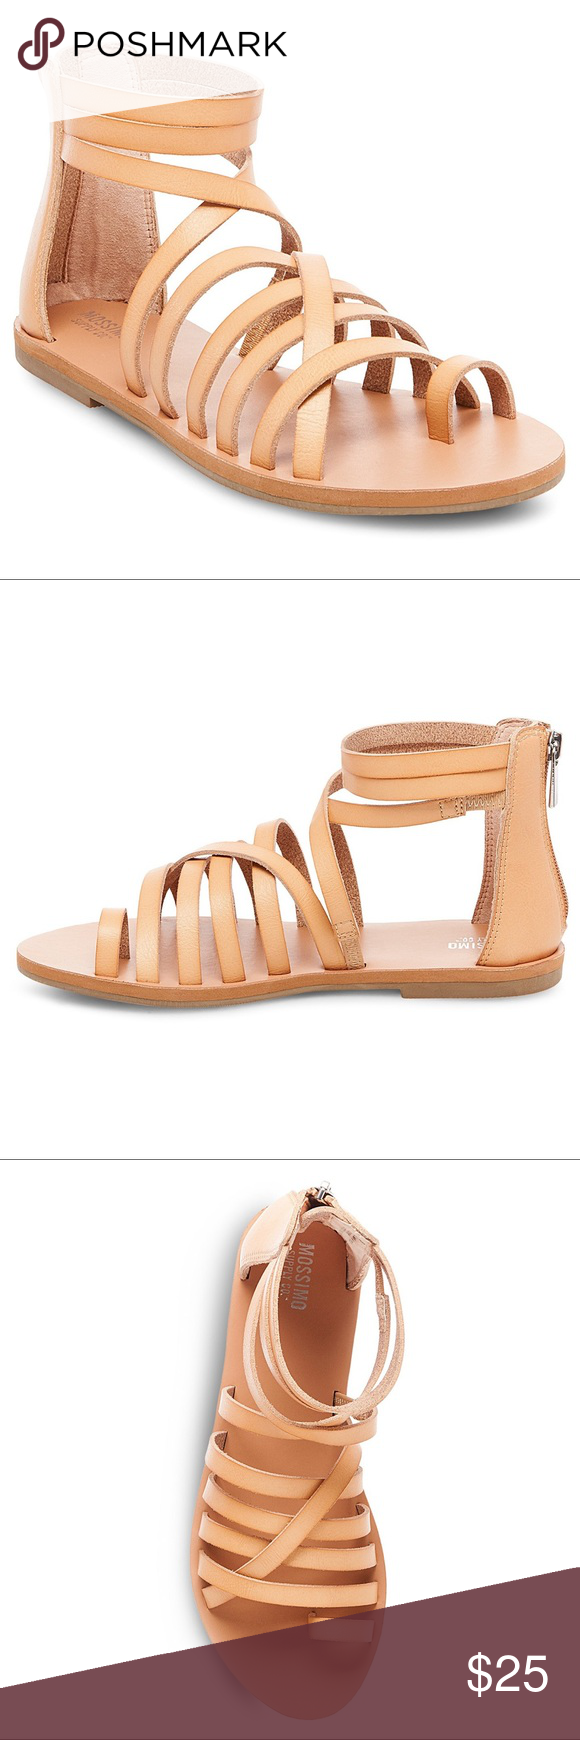 683ba30d1ae Mossimo Jessie Tan Gladiator Sandals New Brand new. Size 6 has tag  attached